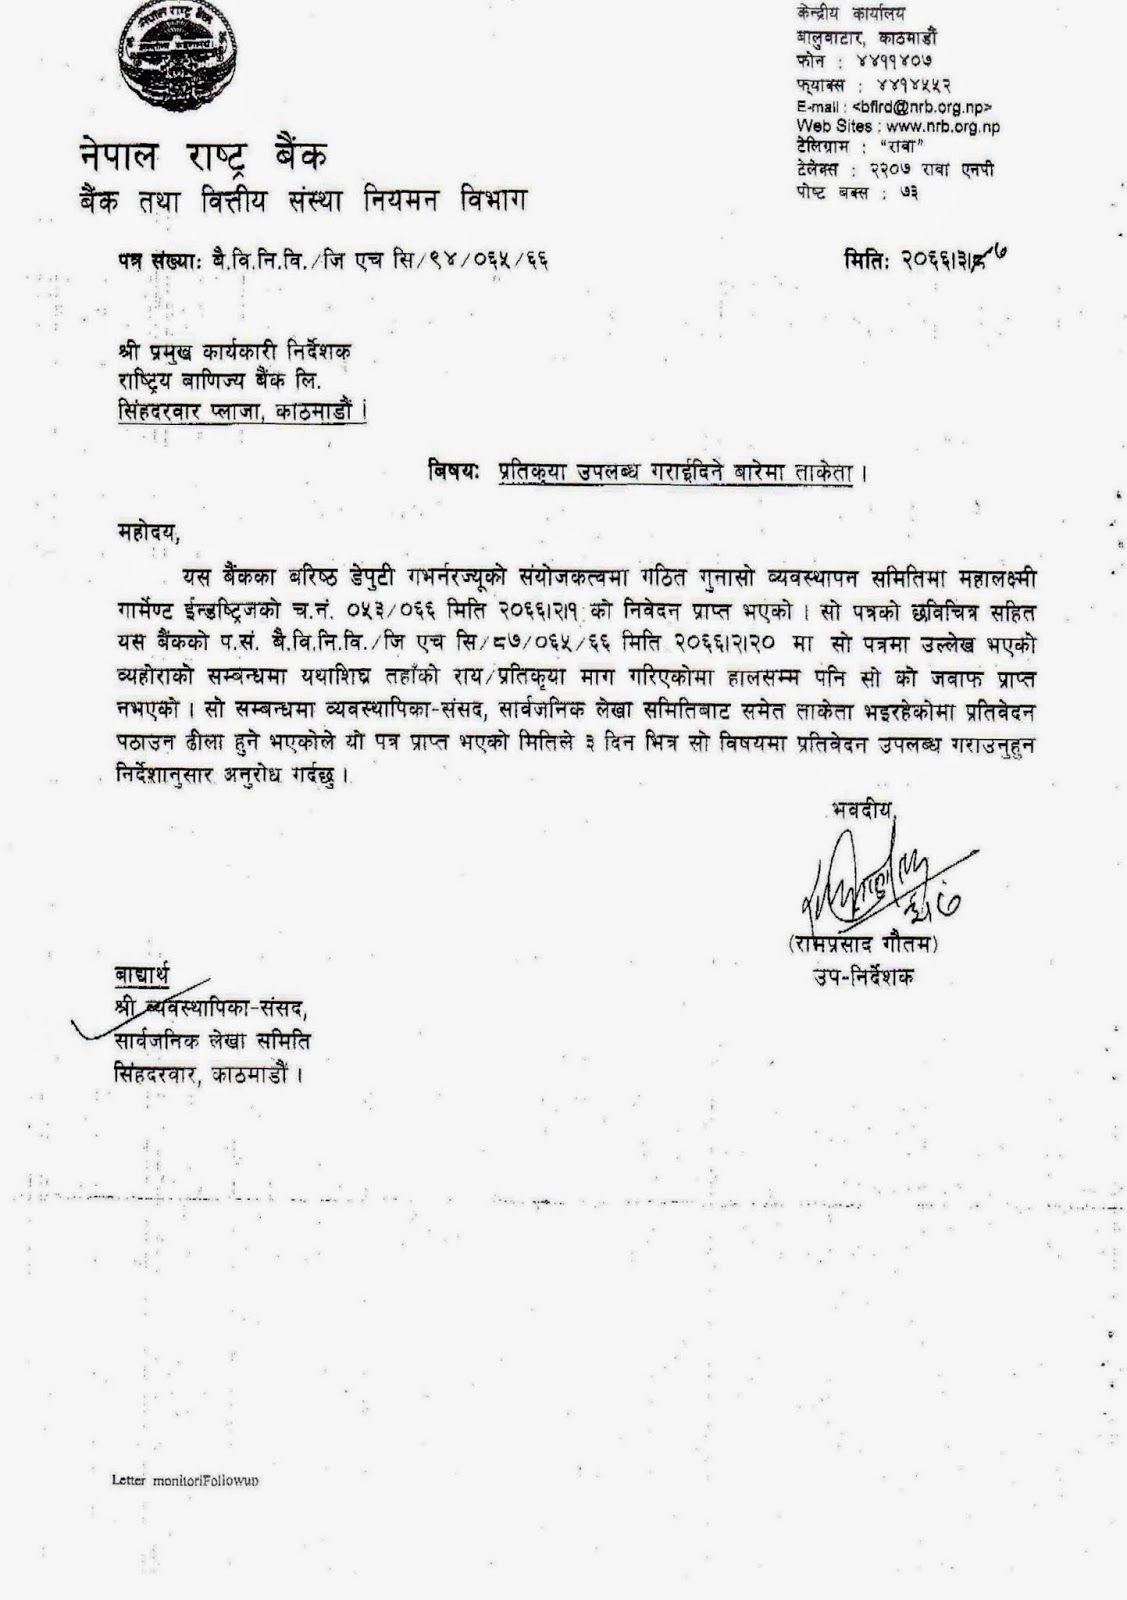 job application letter sample in nepali language trp